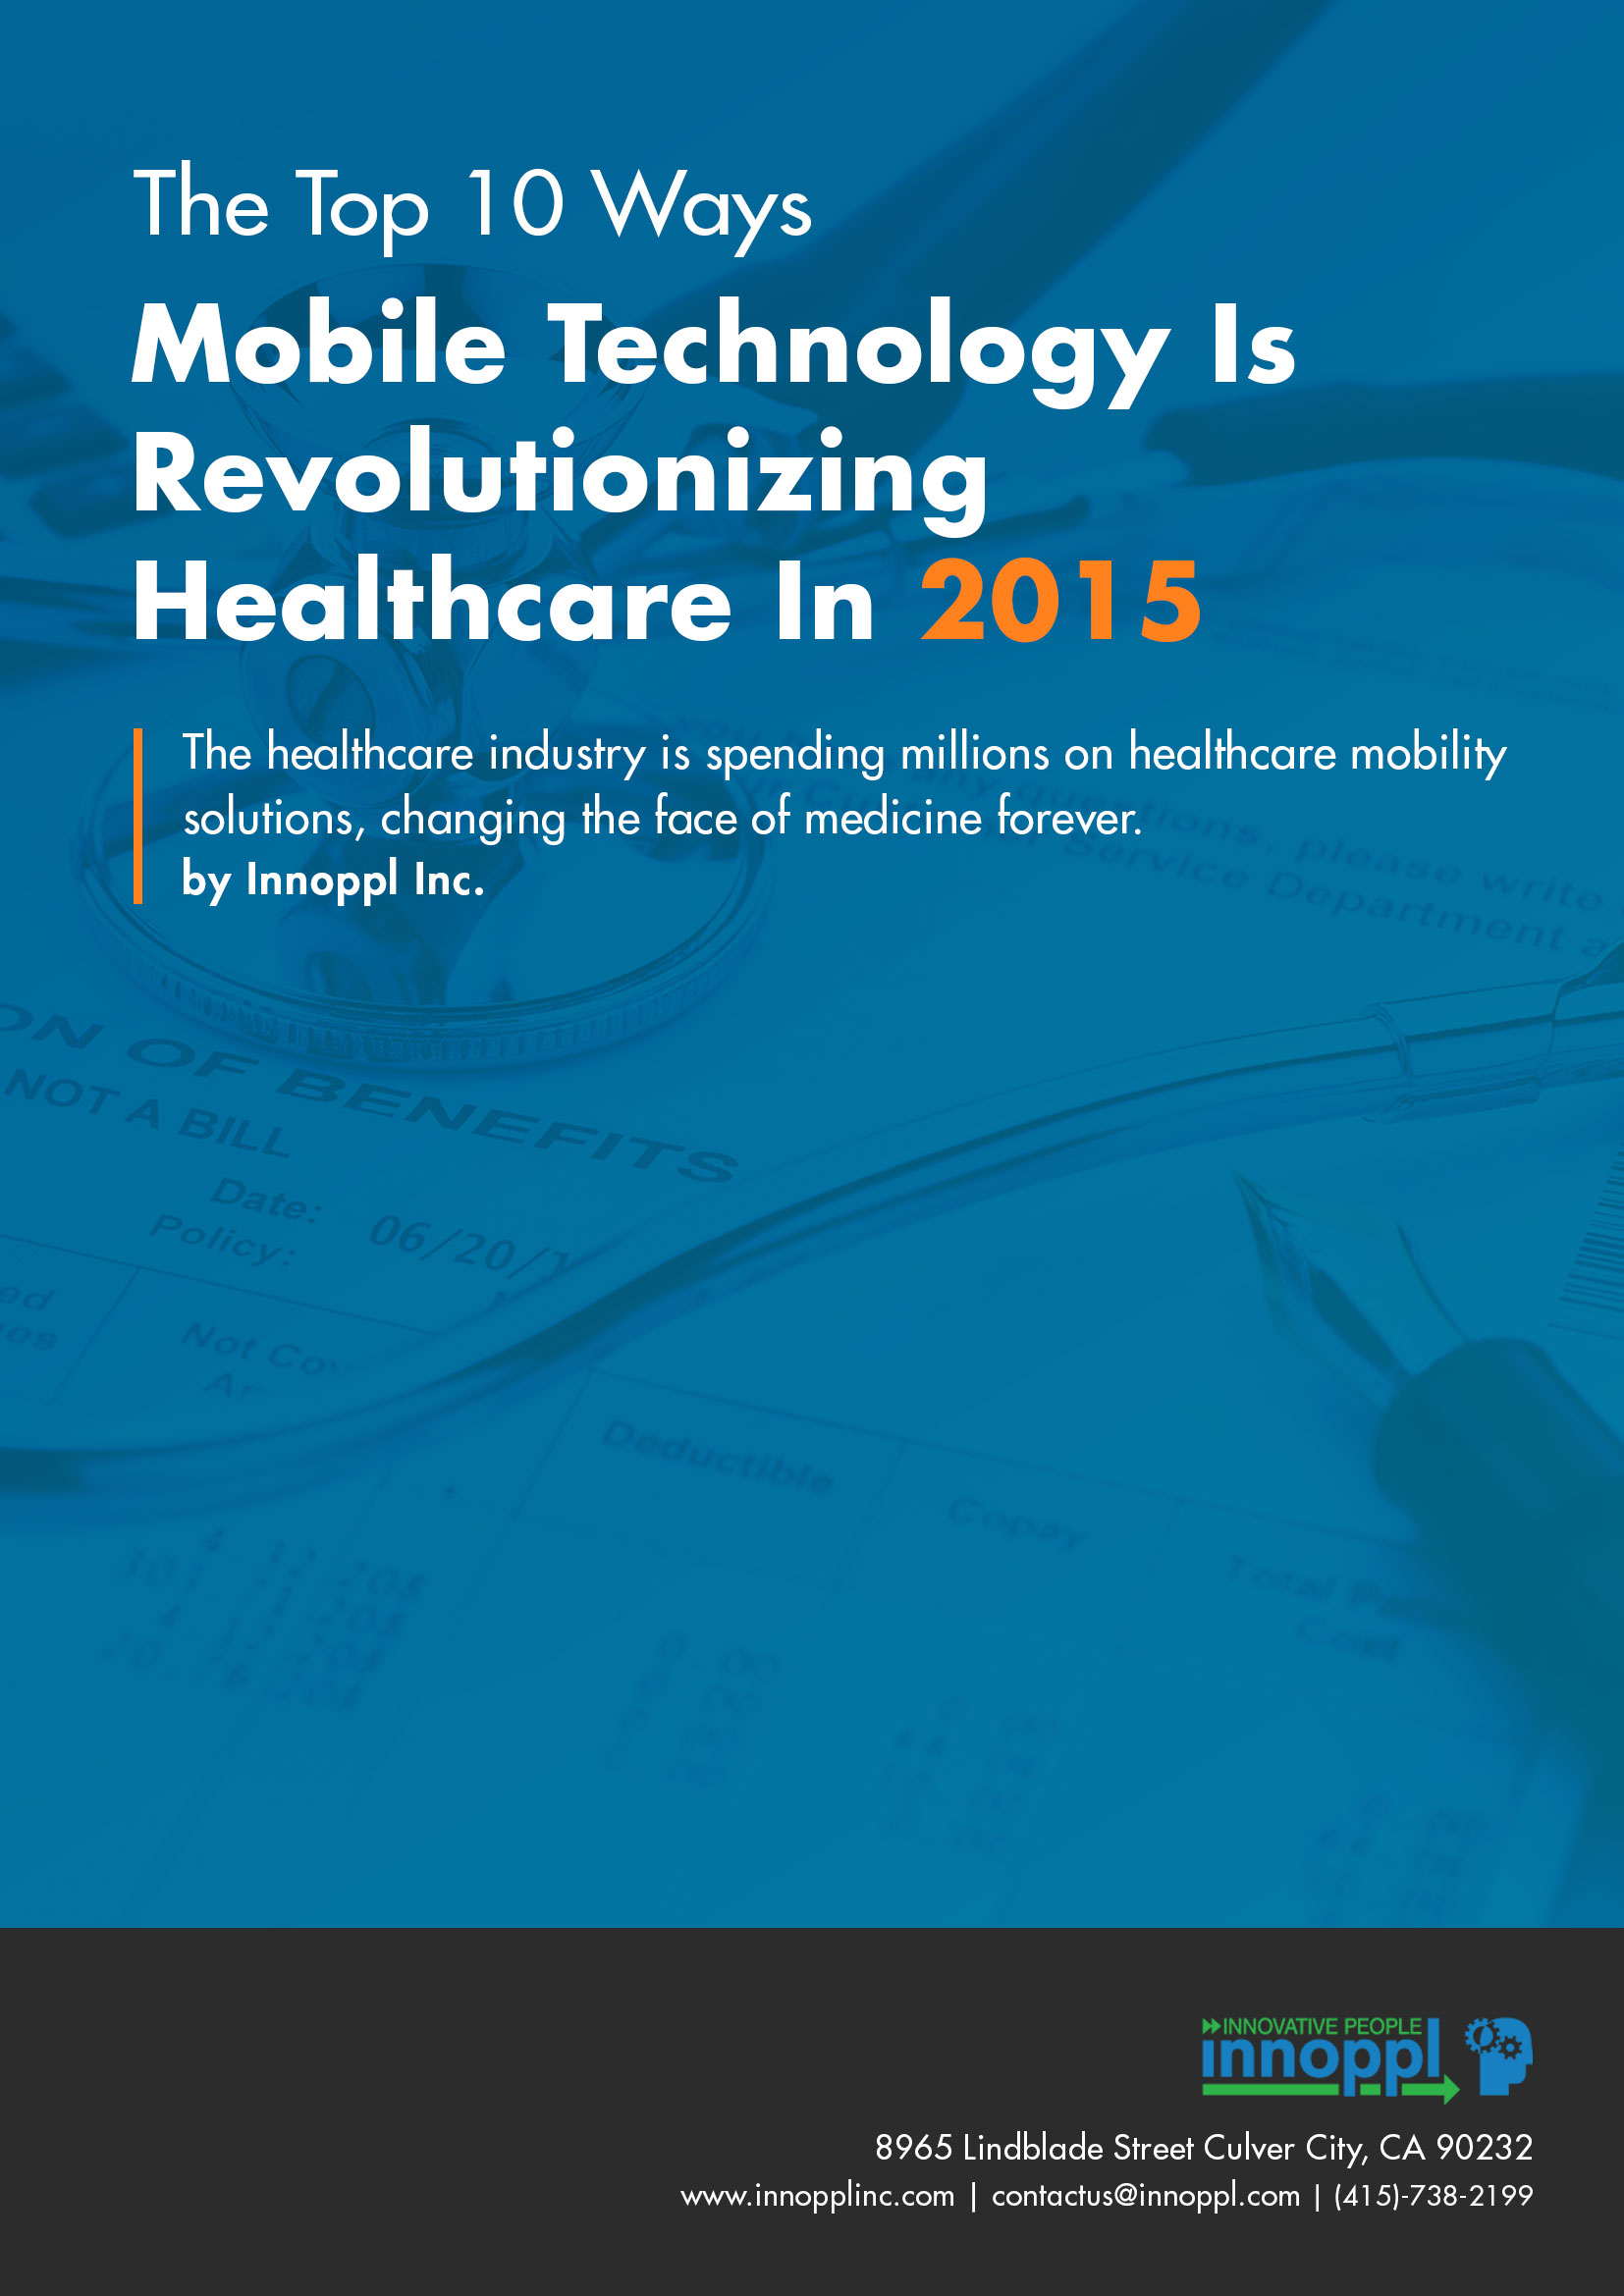 The Top 10 Ways Mobile Technology Is Revolutionizing Healthcare In 2015